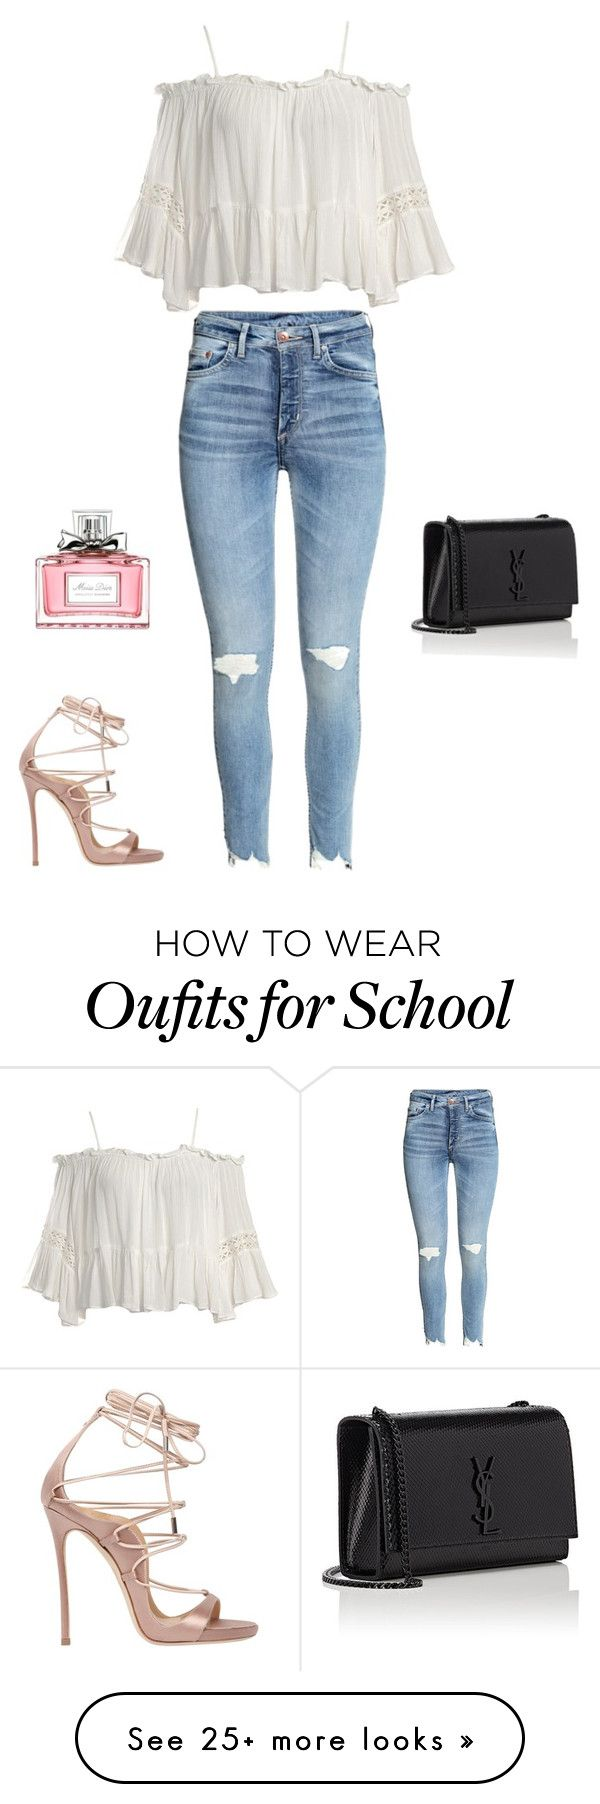 """""""School """" by naja-levin-hansen on Polyvore featuring Sans Souci, Dsquared2, Yves Saint Laurent and Christian Dior"""